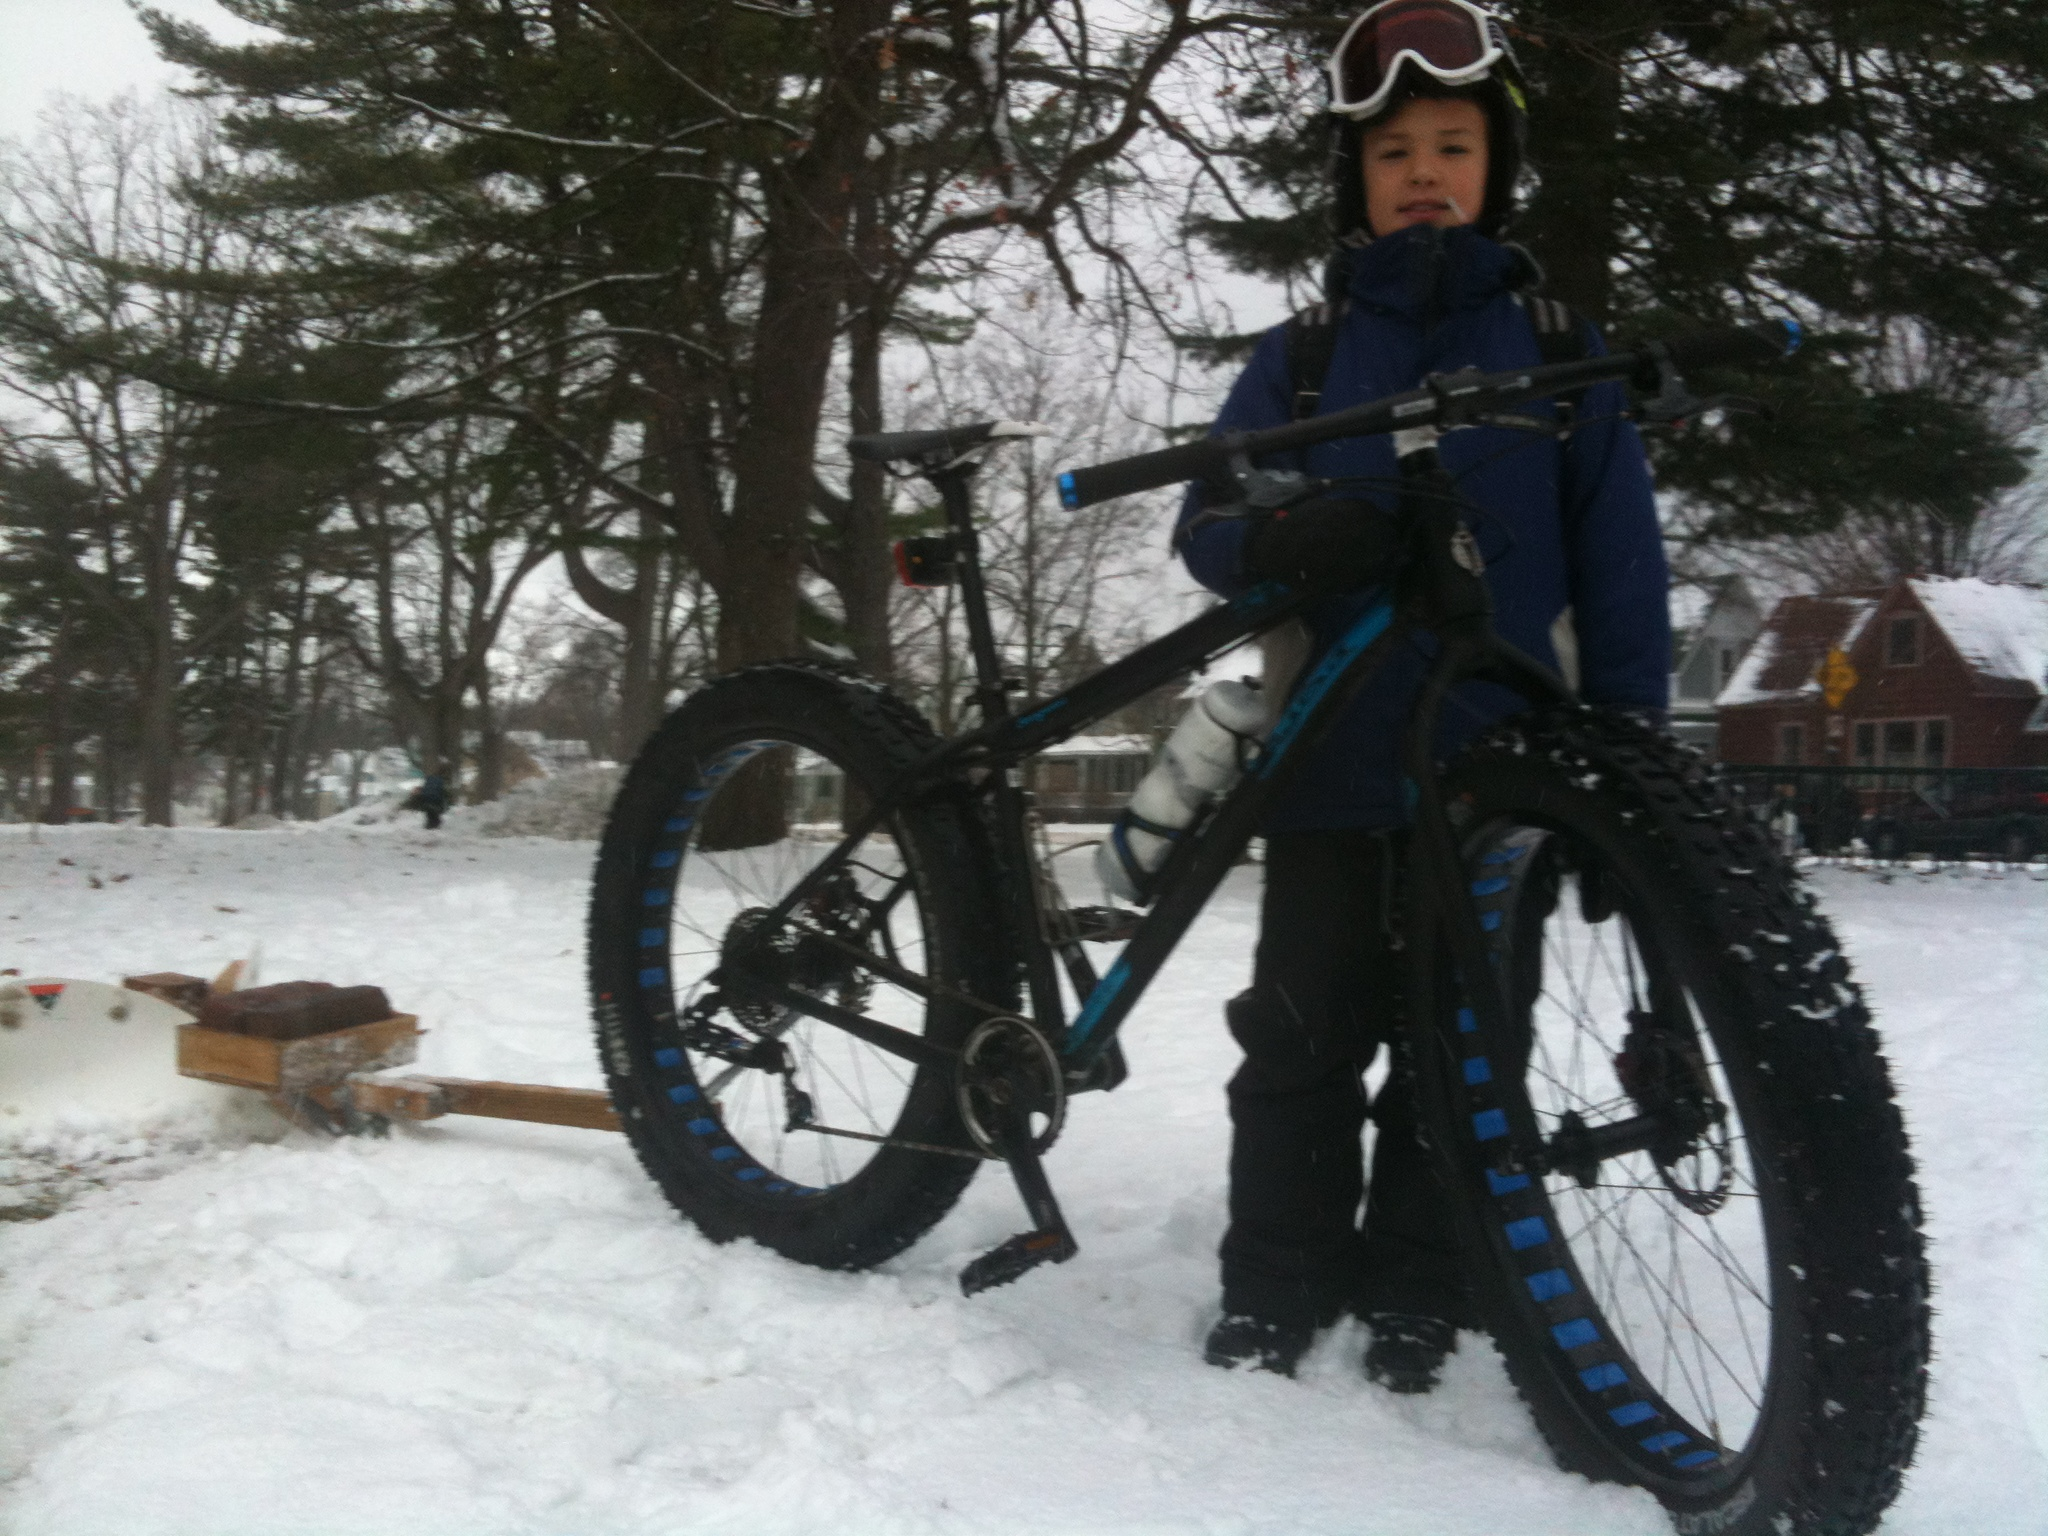 Bike-Powered Snow Plowing with NORTE! Youth Cycling